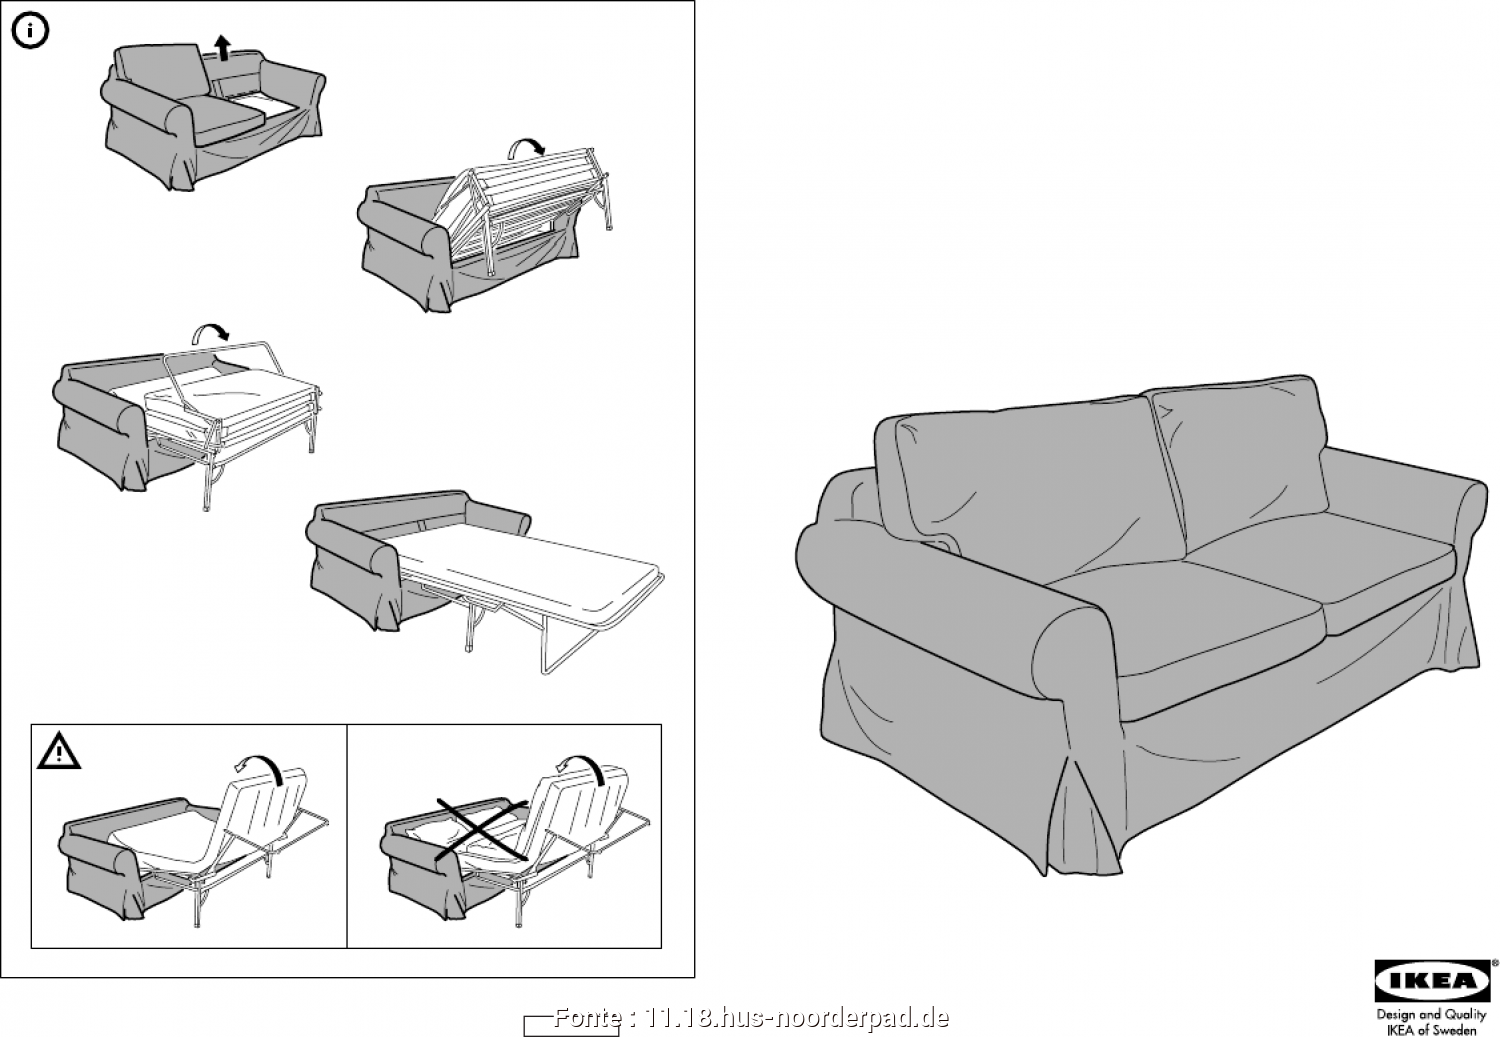 Ikea Vilasund Pdf, Bellissima Bedroom Ikea Chairs, Sofa, With Cover Plus, Assembly Rh Dukers, Ikea Sofa